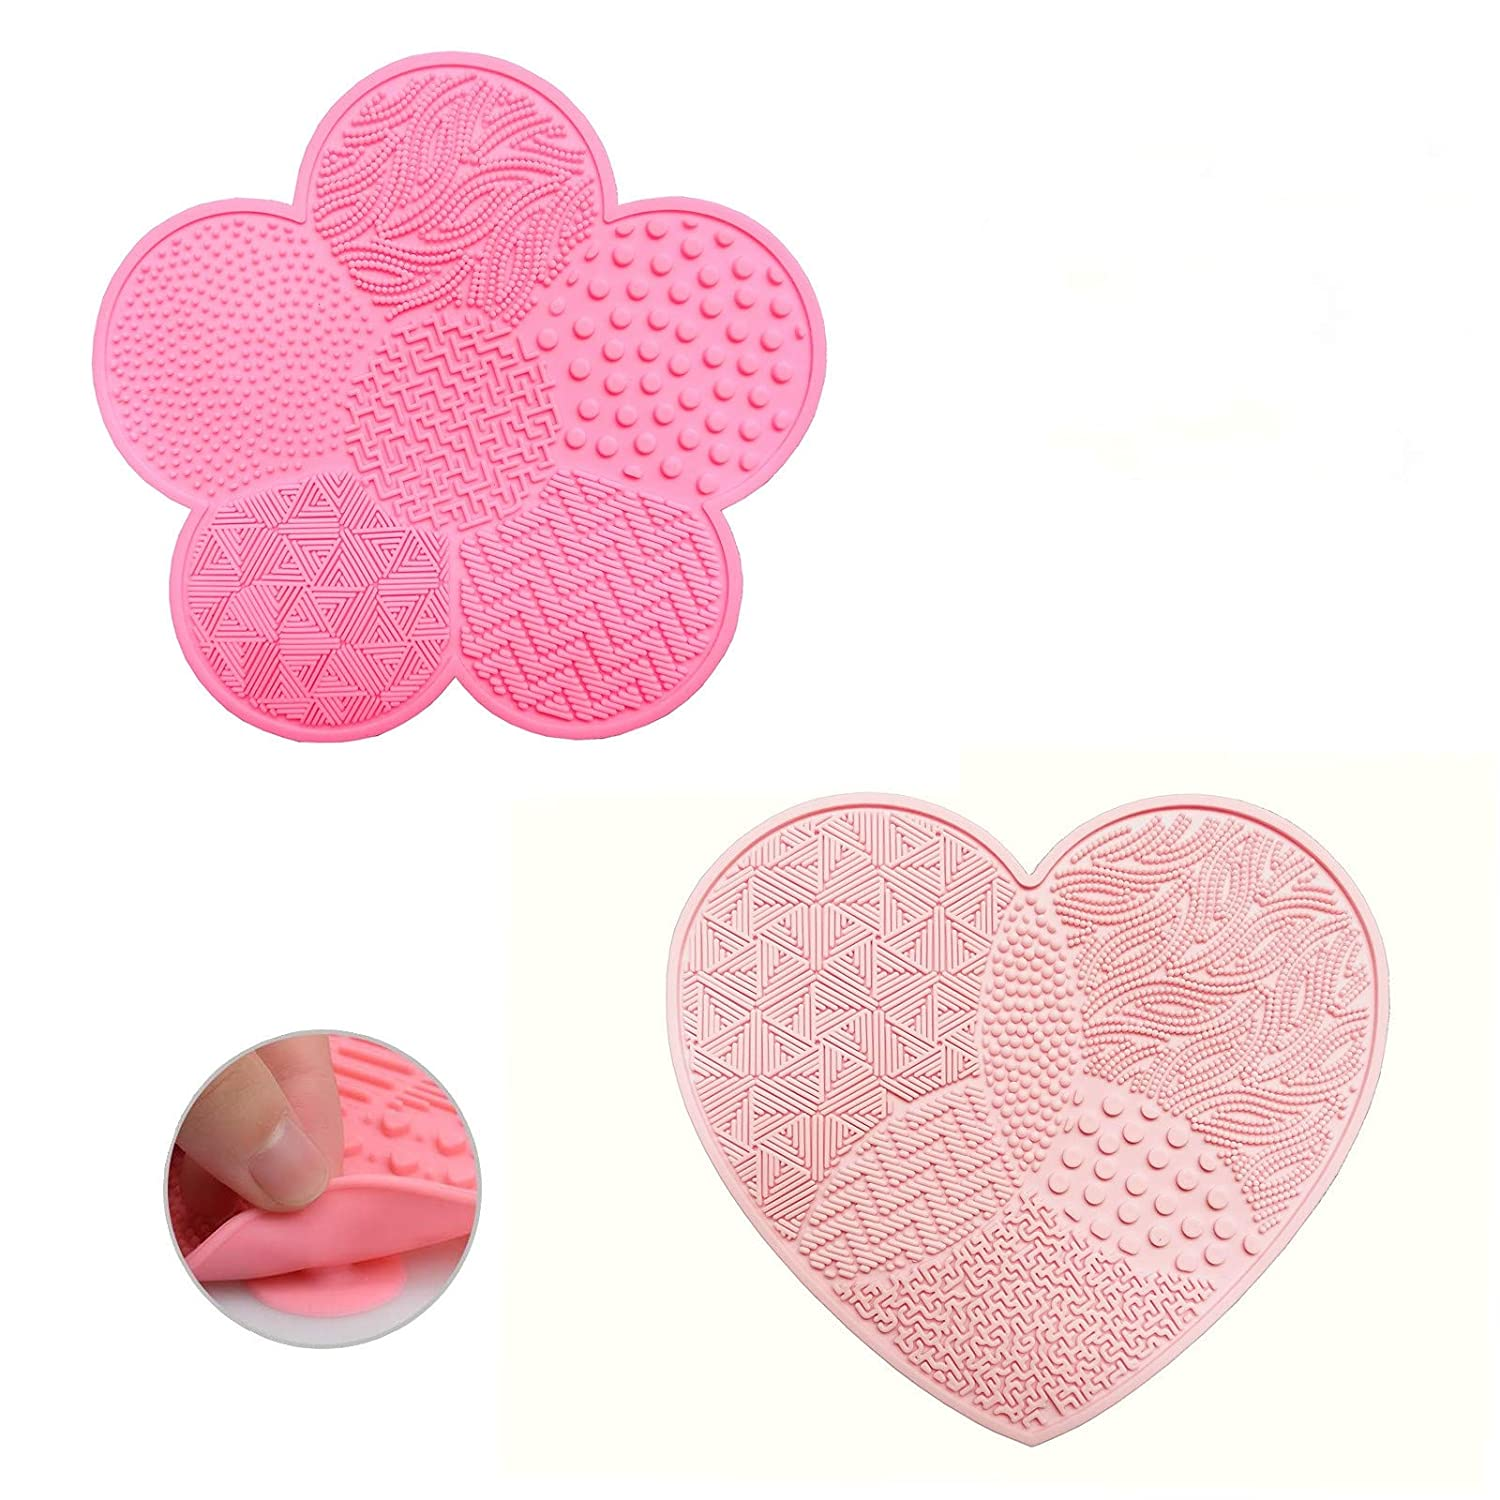 Silicone Makeup Brush Cleaner Cosmetic Brush Cleaning Mat 2 PCS Portable Washing Tool Scrubber Makeup Brush Cleaning Pad with Suction Cup,1 pink heart shaped and 1 rose red flower shaped